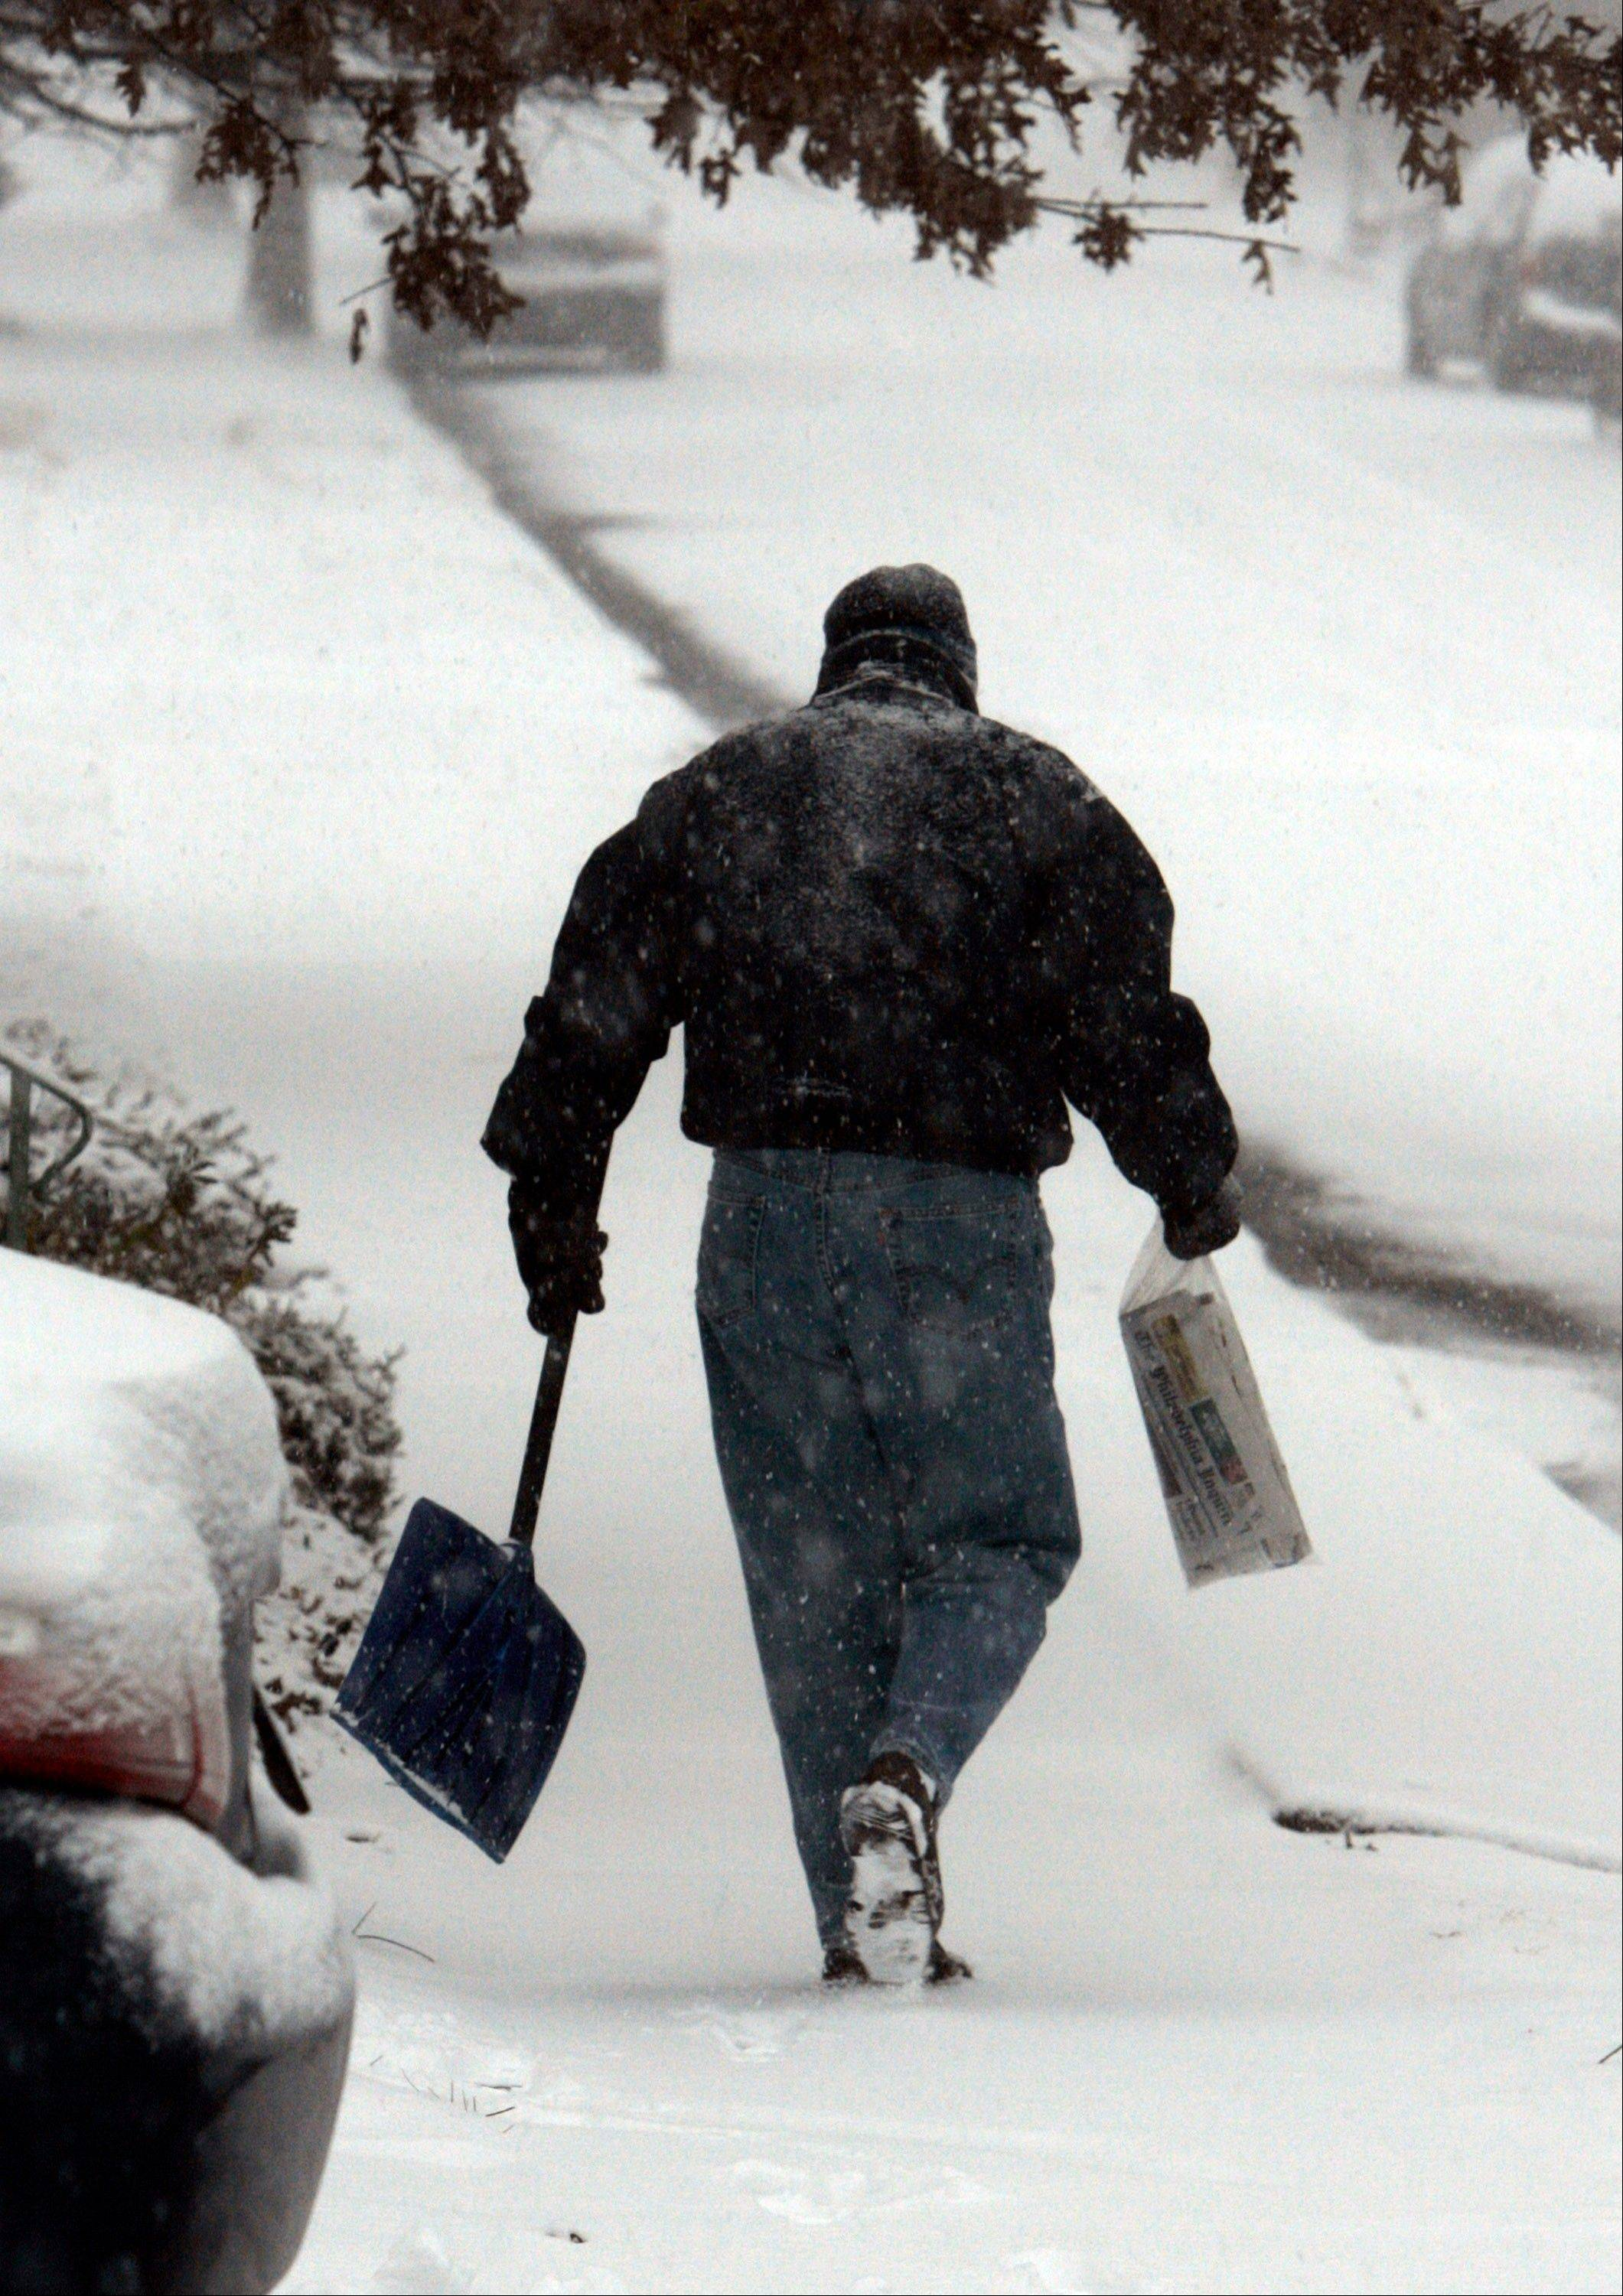 Bill Winterle carries his neighbor's newspaper to her doorstep while shoveling his driveway during a major winter storm in Havertown, Pa. Make sure packages and newspapers aren't sitting in your driveway day after day while you're away for the holidays will help deter thieves.